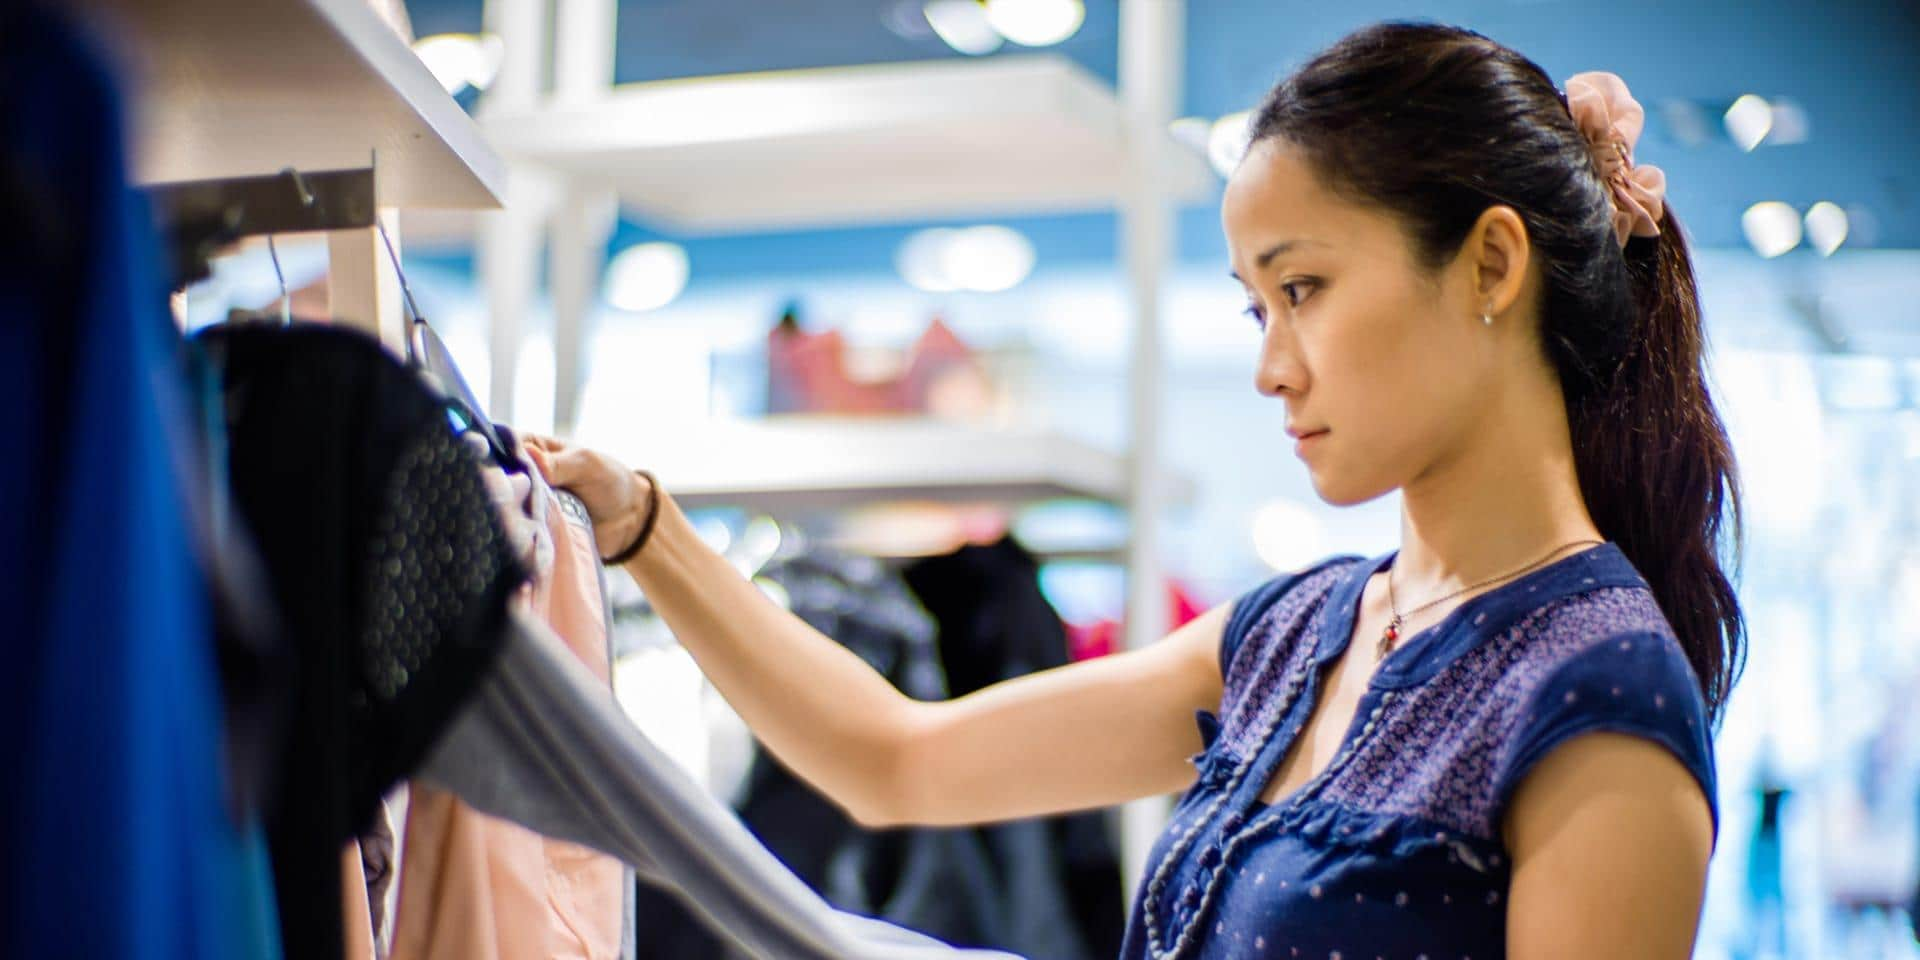 Woman shopping in retail clothes